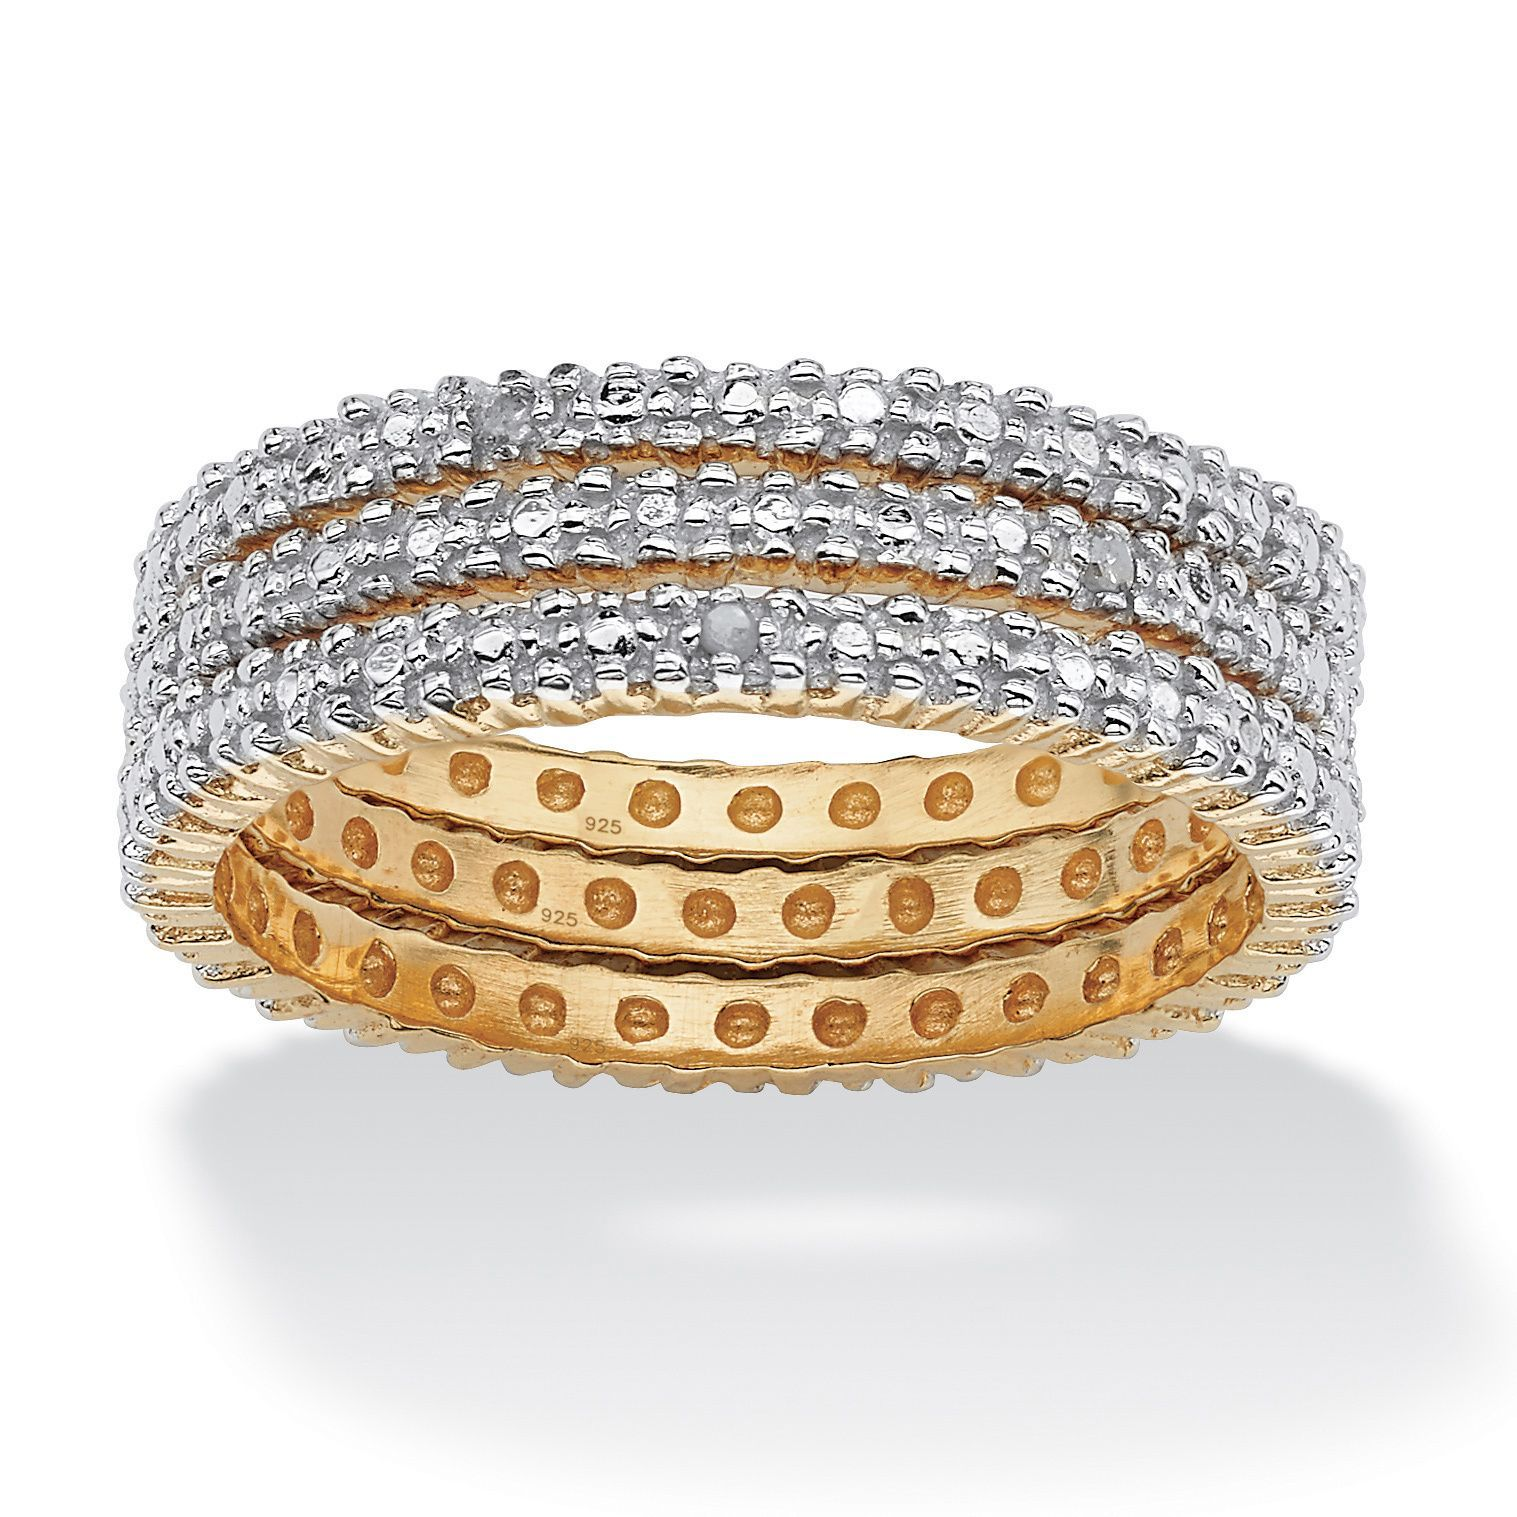 Palm Beach Jewelry PalmBeach 3 Piece Diamond Accented Eternity Band Set in 18k Gold over Sterling Silver